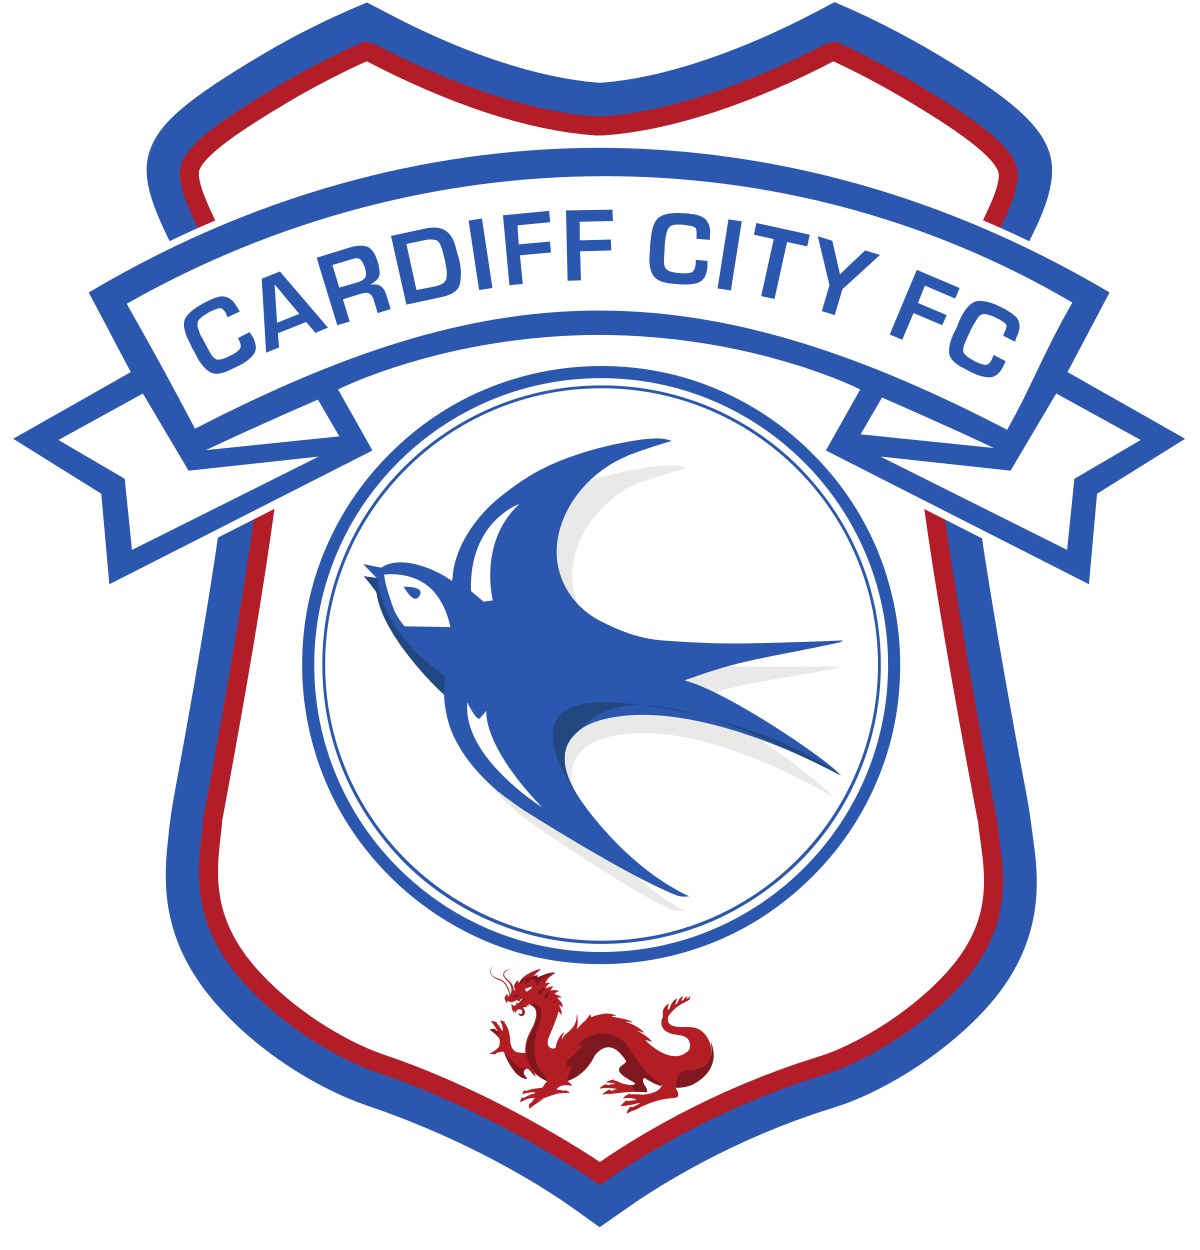 Cardiff City FC Foundation logo